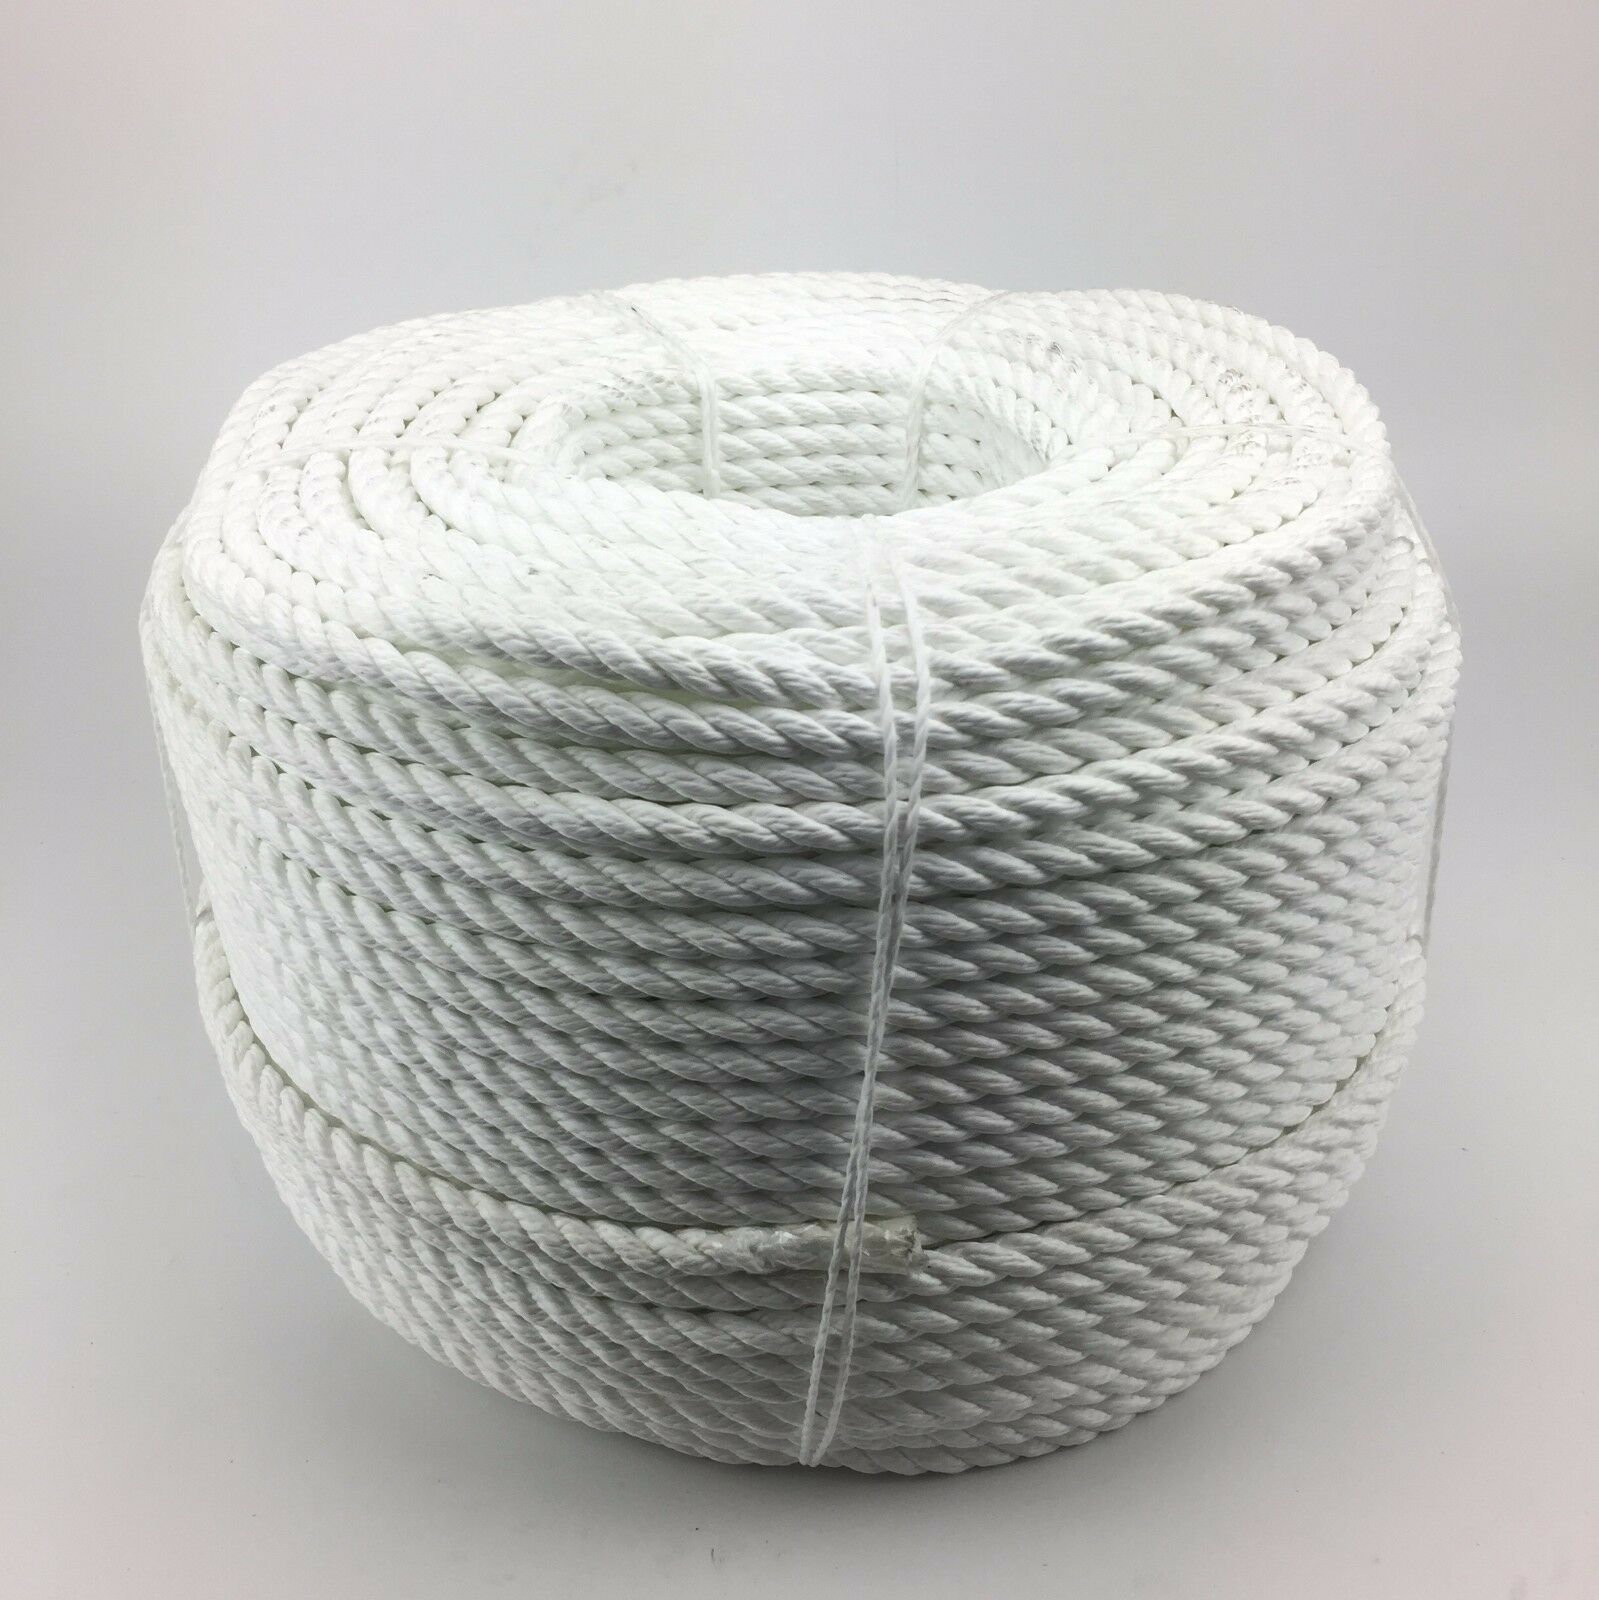 3 Strand White Multifilament 8mm (Floating Rope) x 220m Coil Boats Yacht